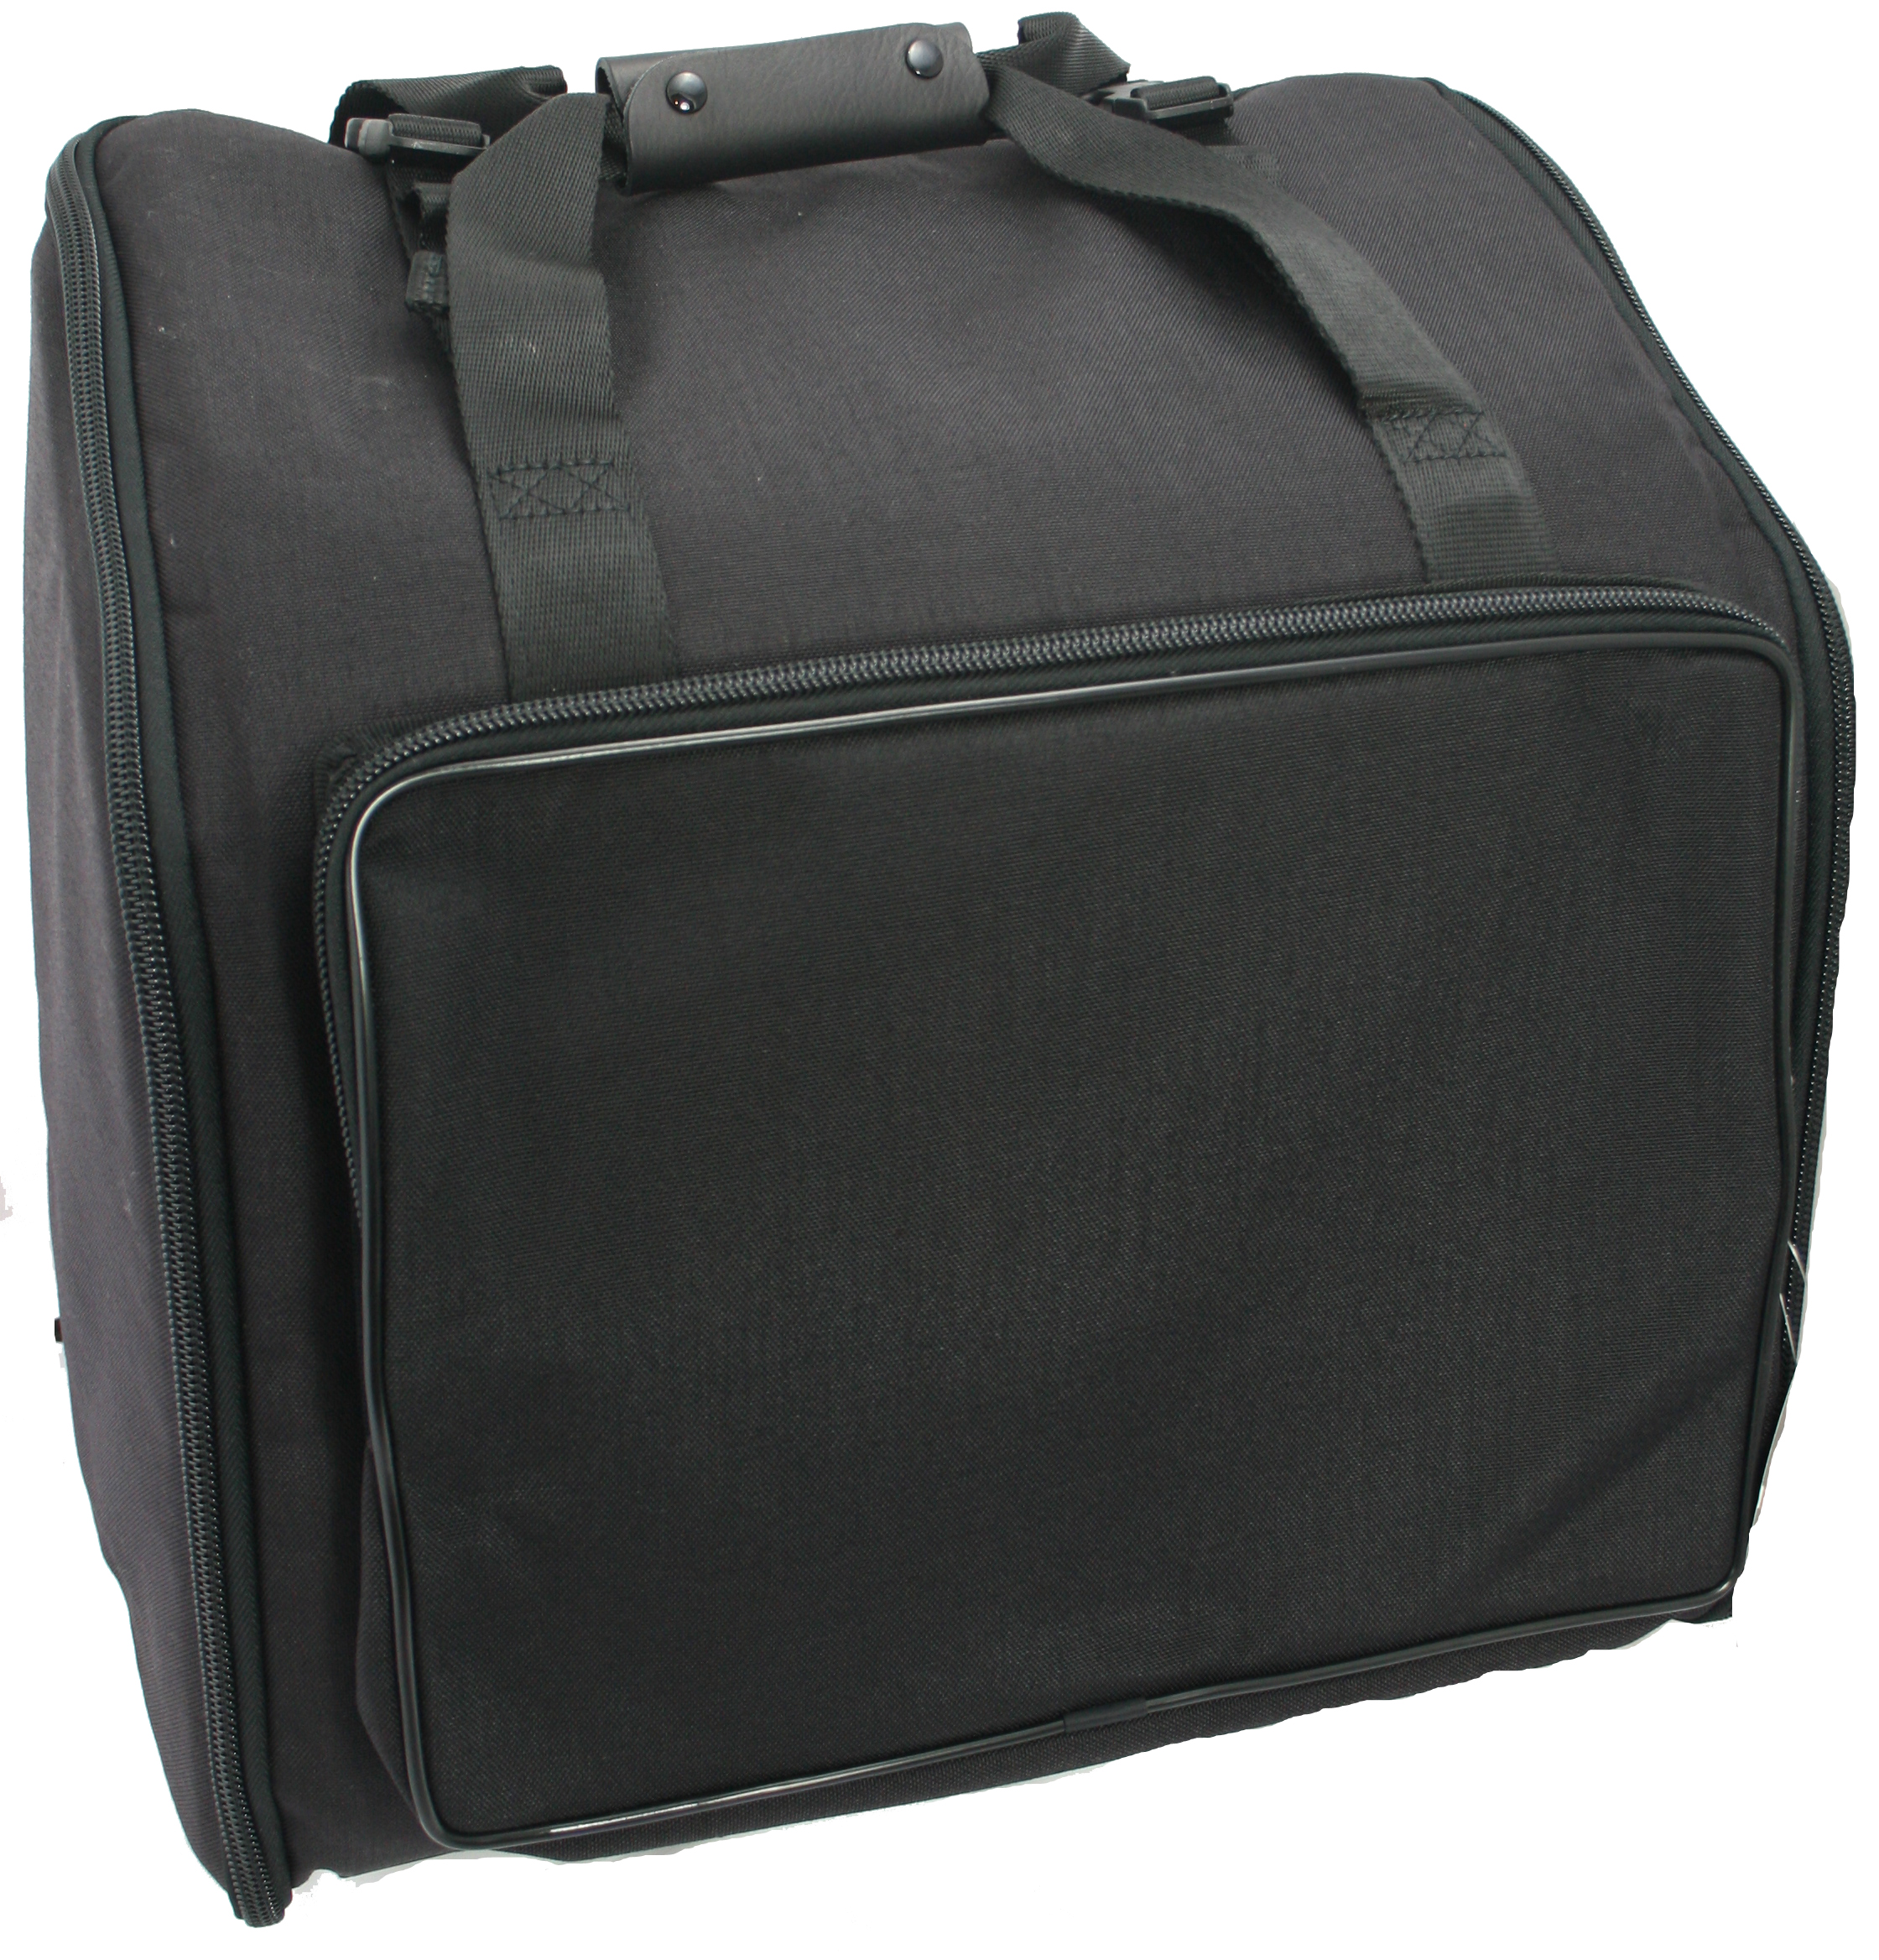 37/96 Accordion  Soft Case